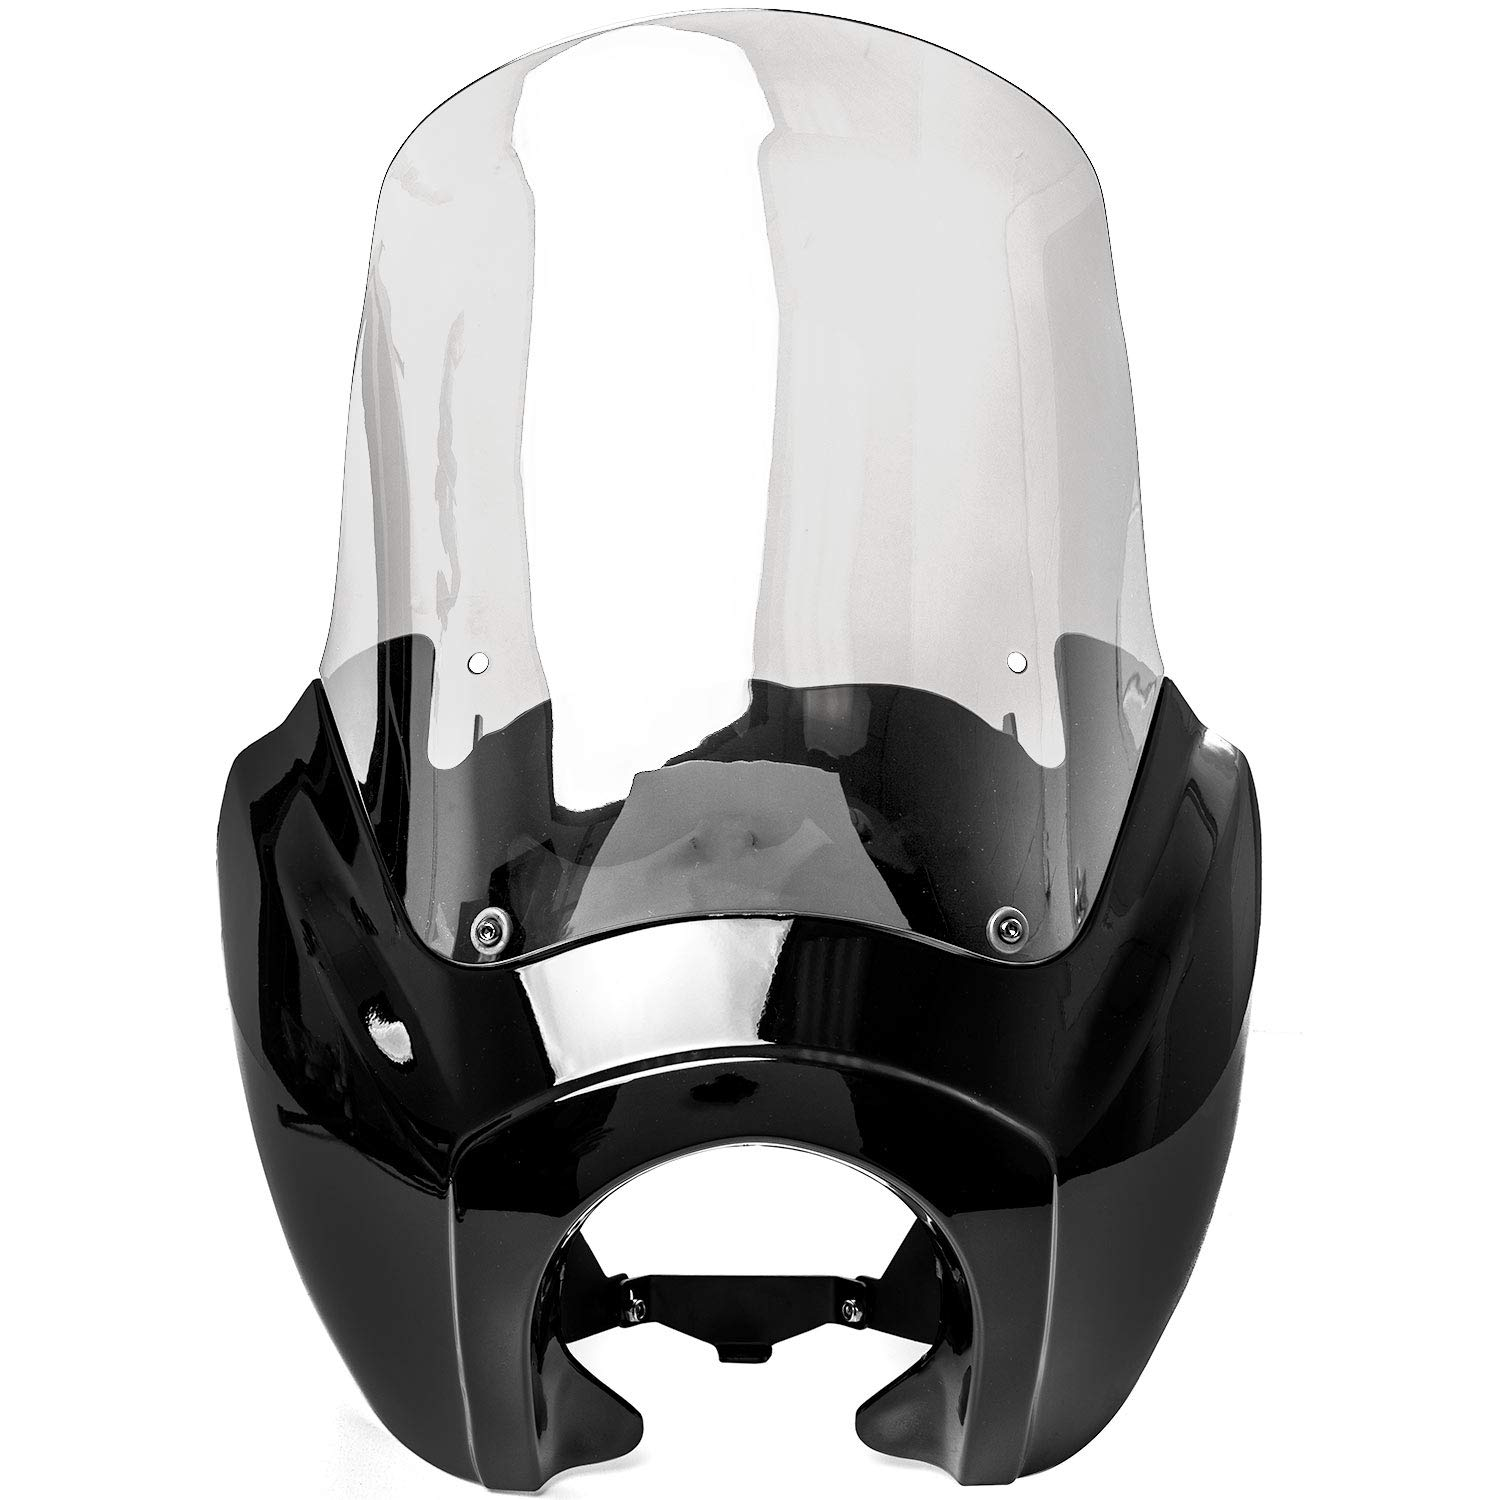 Krator Black /& Clear Tall Fairing Windshield Club Style Kit for 2006-2017 Harley-Davidson Dyna Modification May Be Required